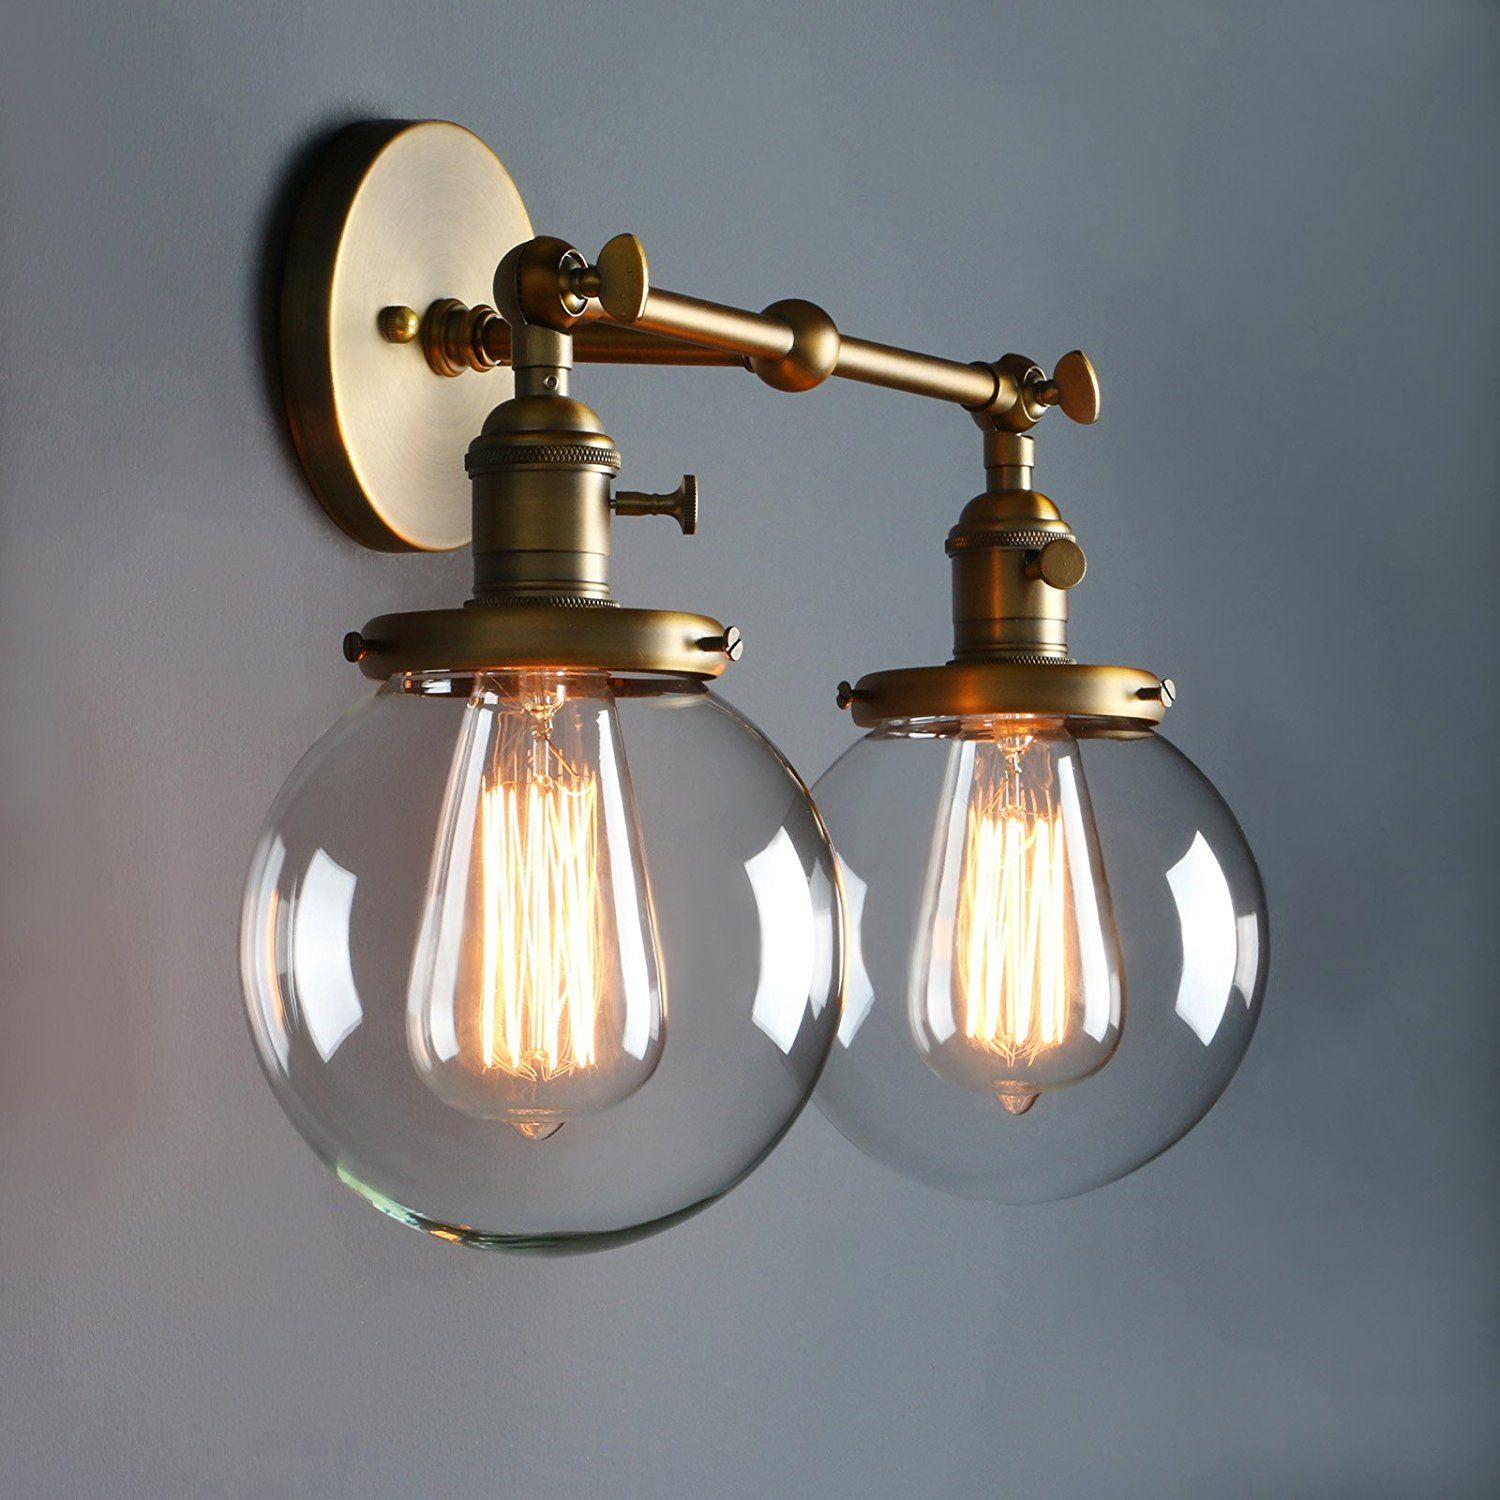 Phansthy Vintage 2 Light Wall Sconce Industrial Wall Light 5 9